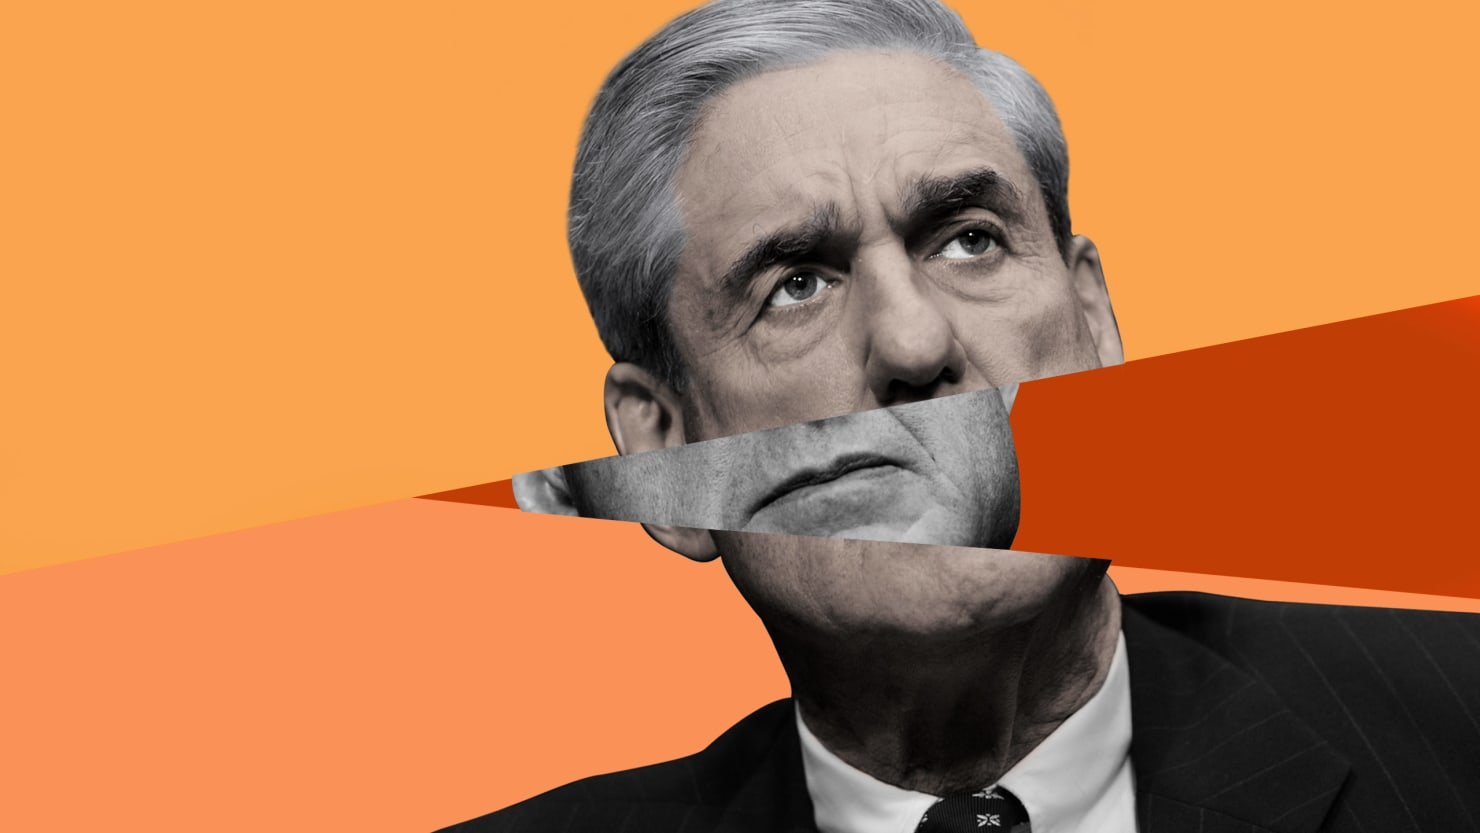 Get Ready for Mueller's Phase Two: The Middle East Connection (thedailybeast.com)